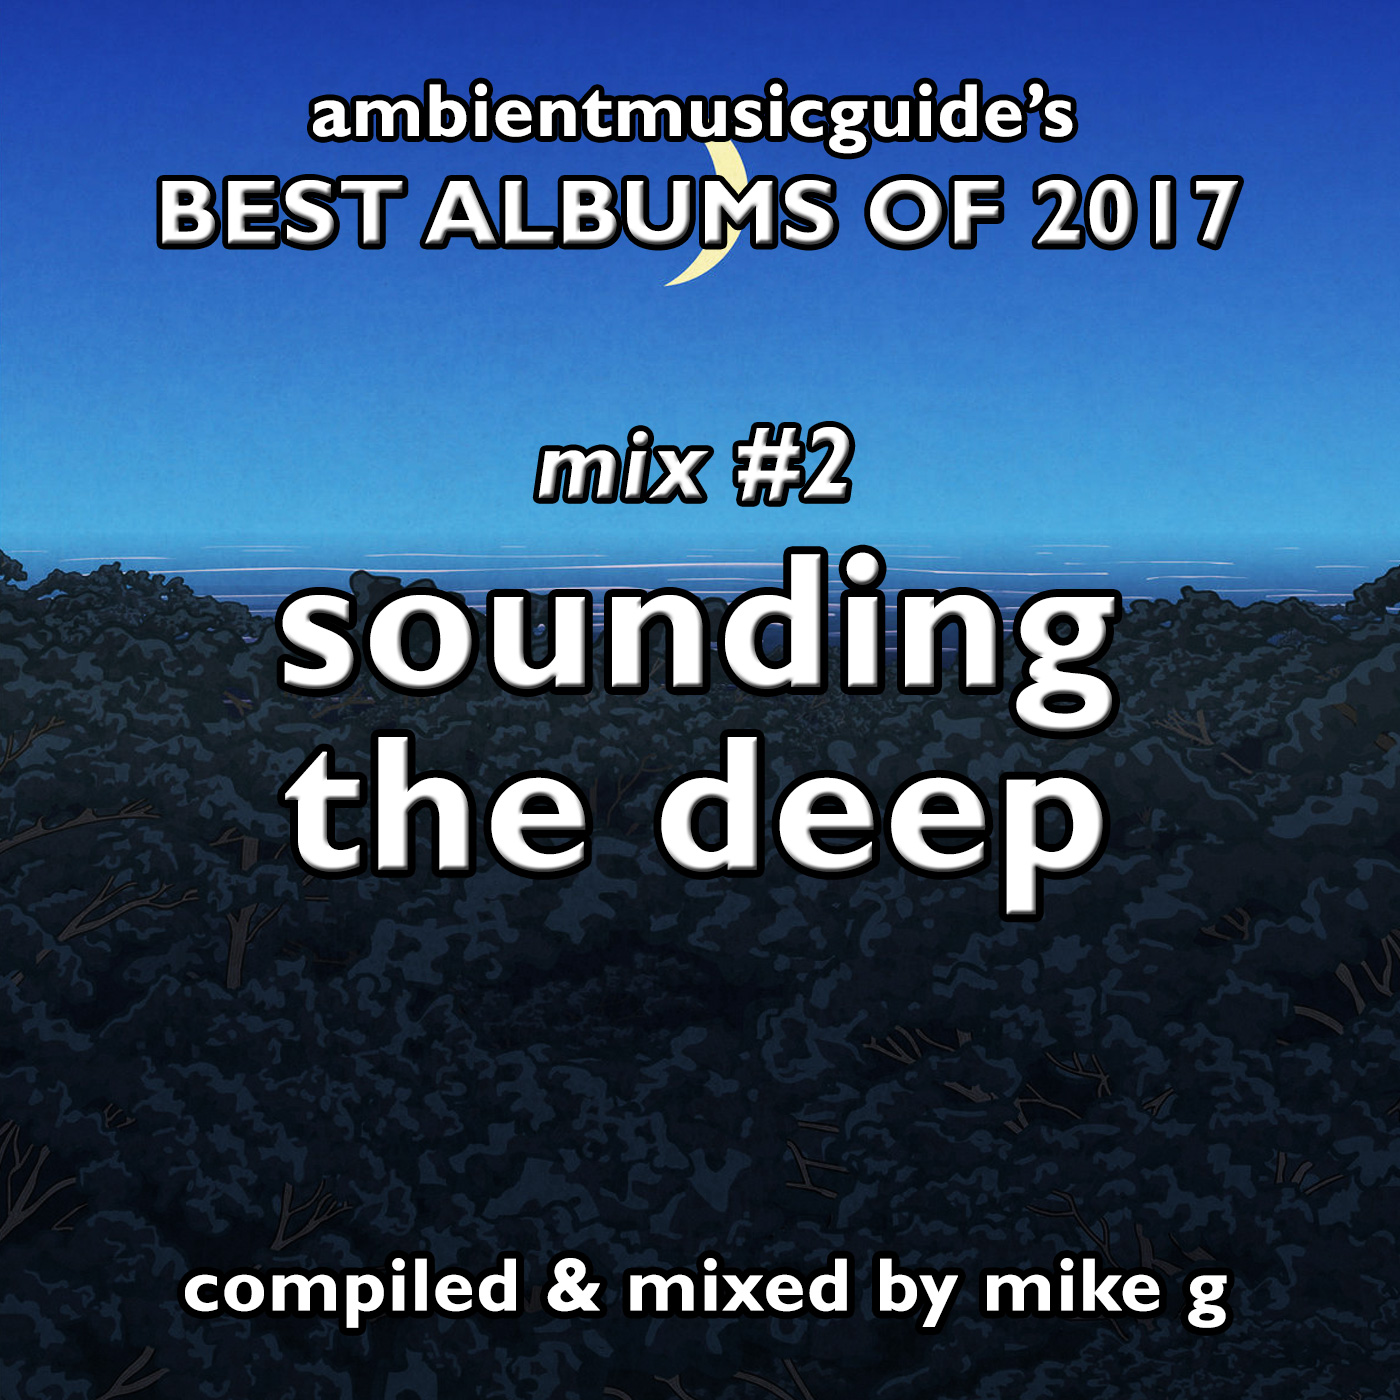 Best Albums 2017 Mix 2 - Sounding The Deep compiled by Mike G